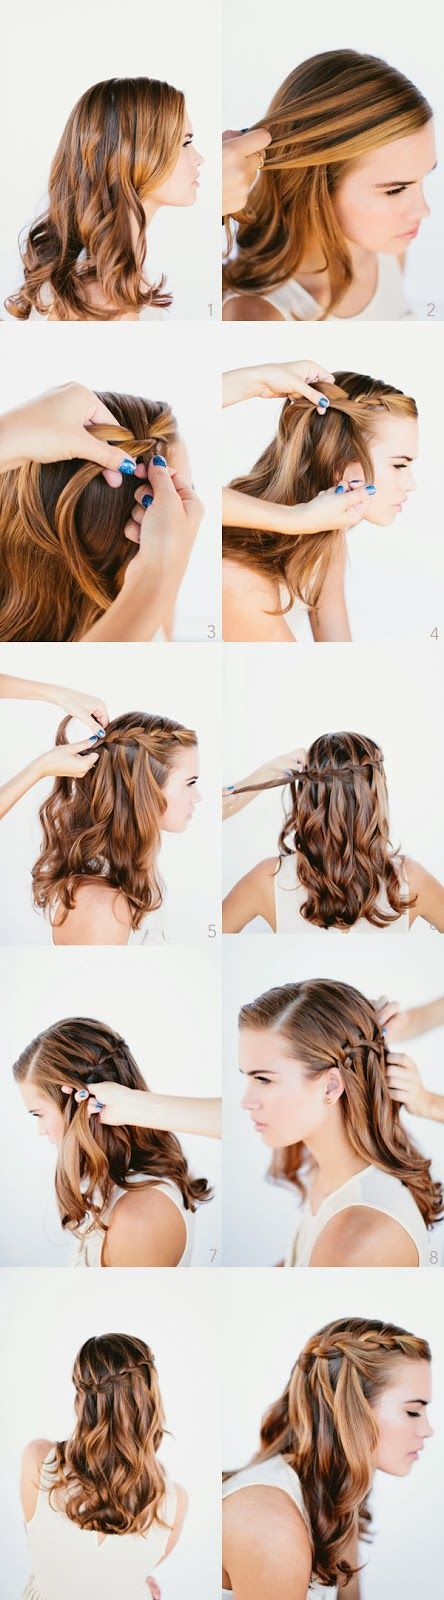 Waterfall braid - I have no idea how to do this... -___-""